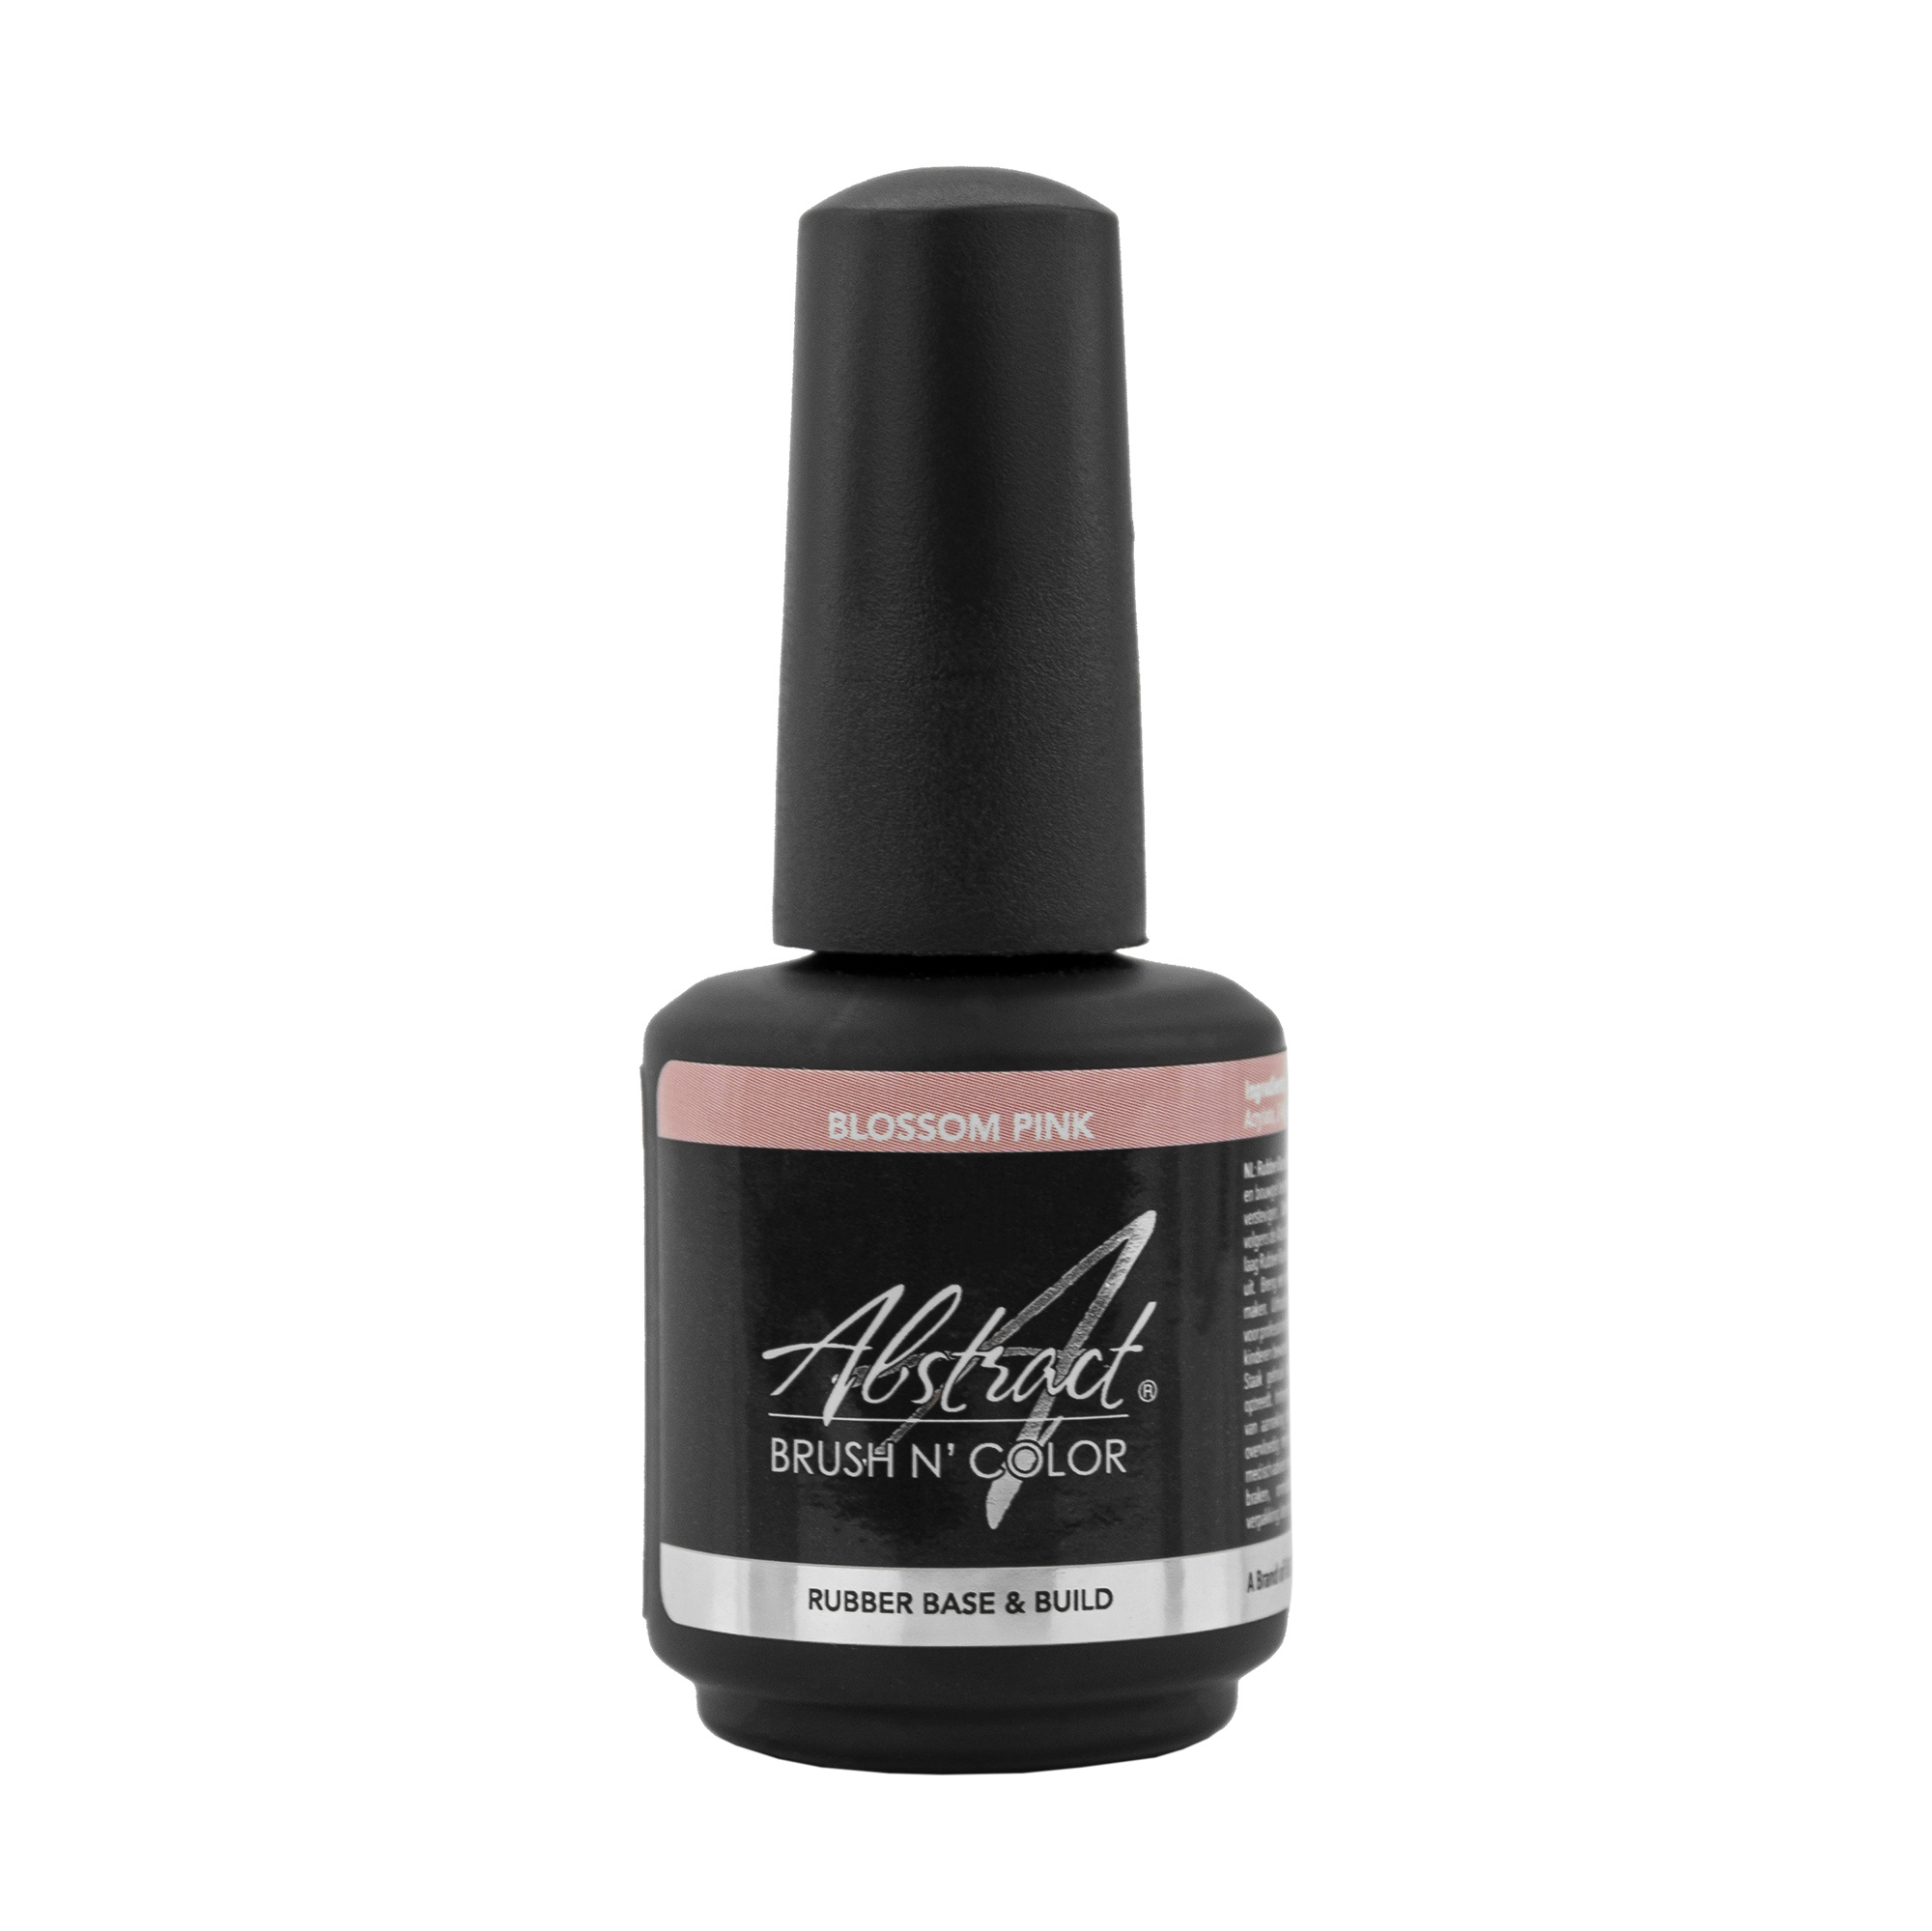 Abstract® Brush N' Color 15 ml Rubber Base & Build - Blossom Pink